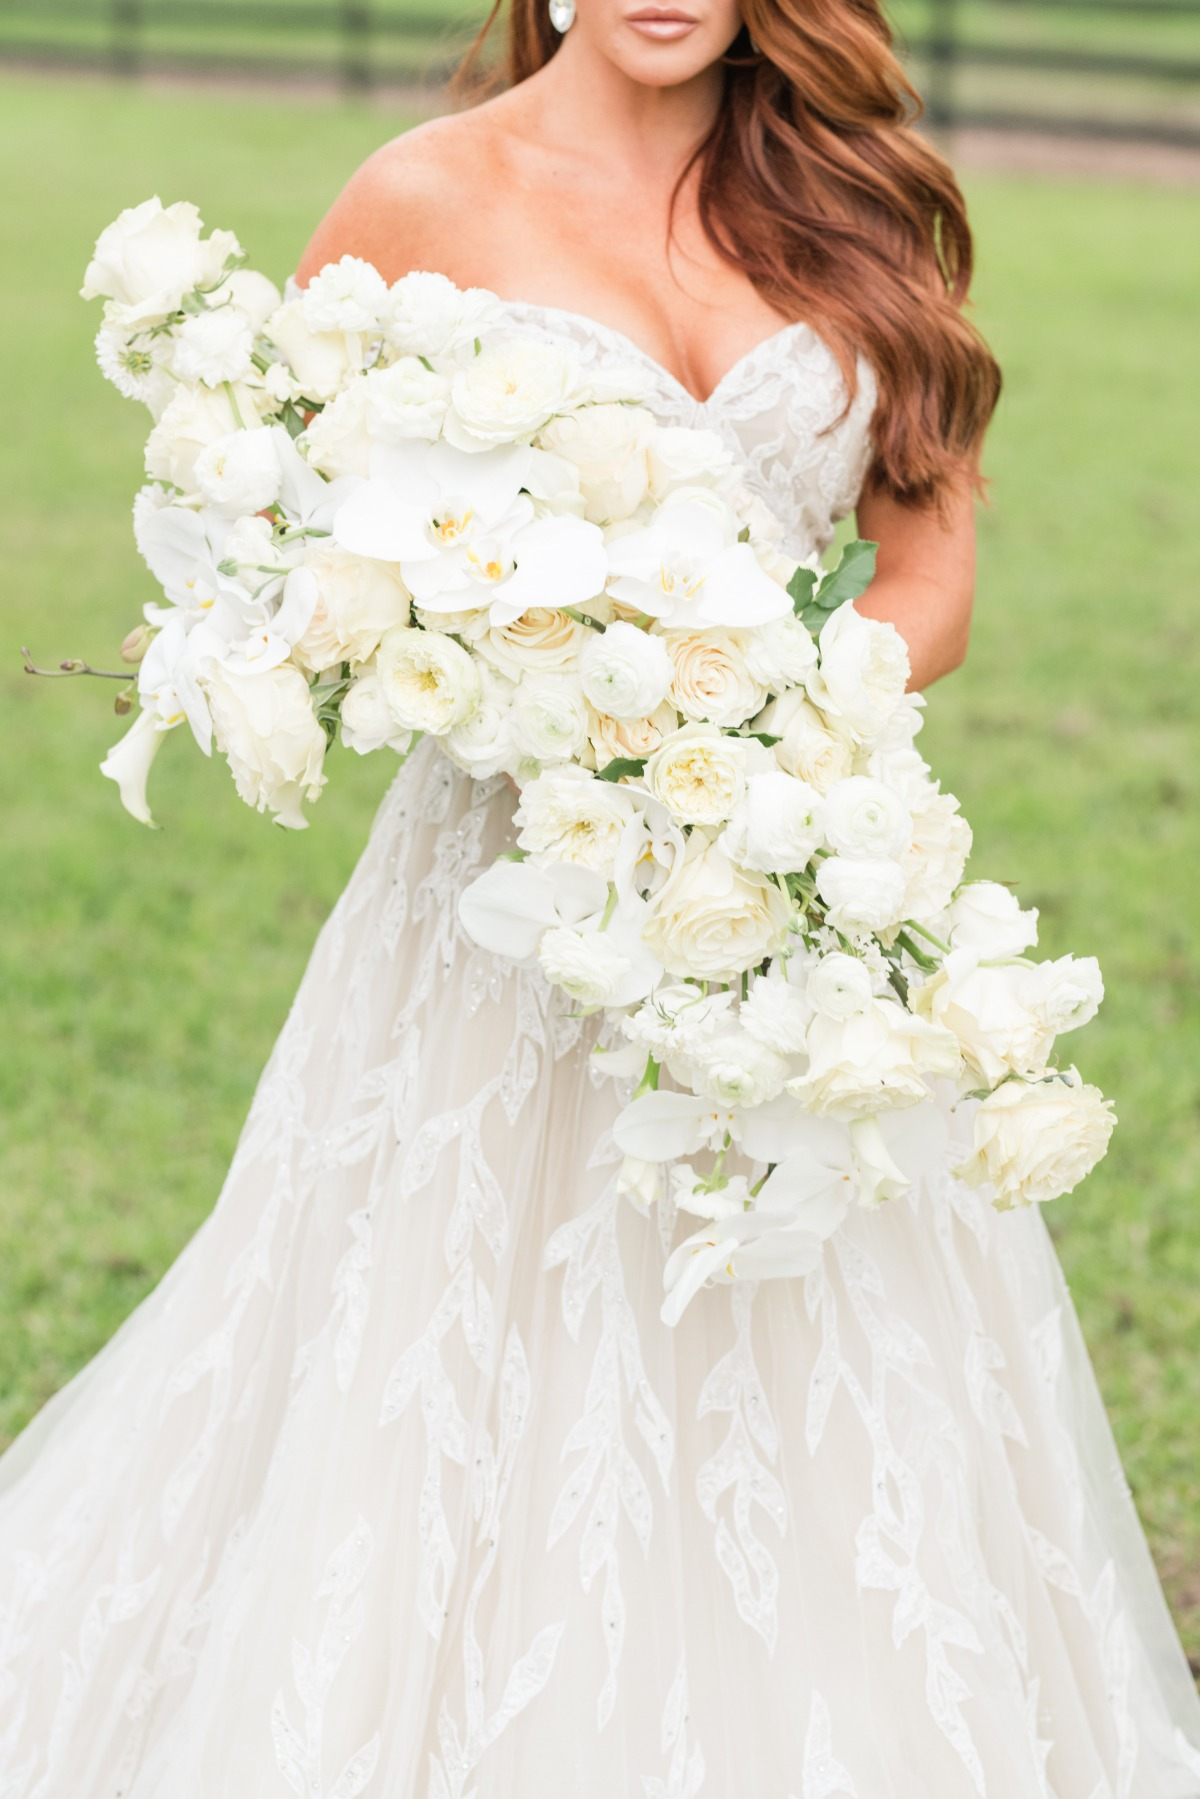 All-white wedding bouquet